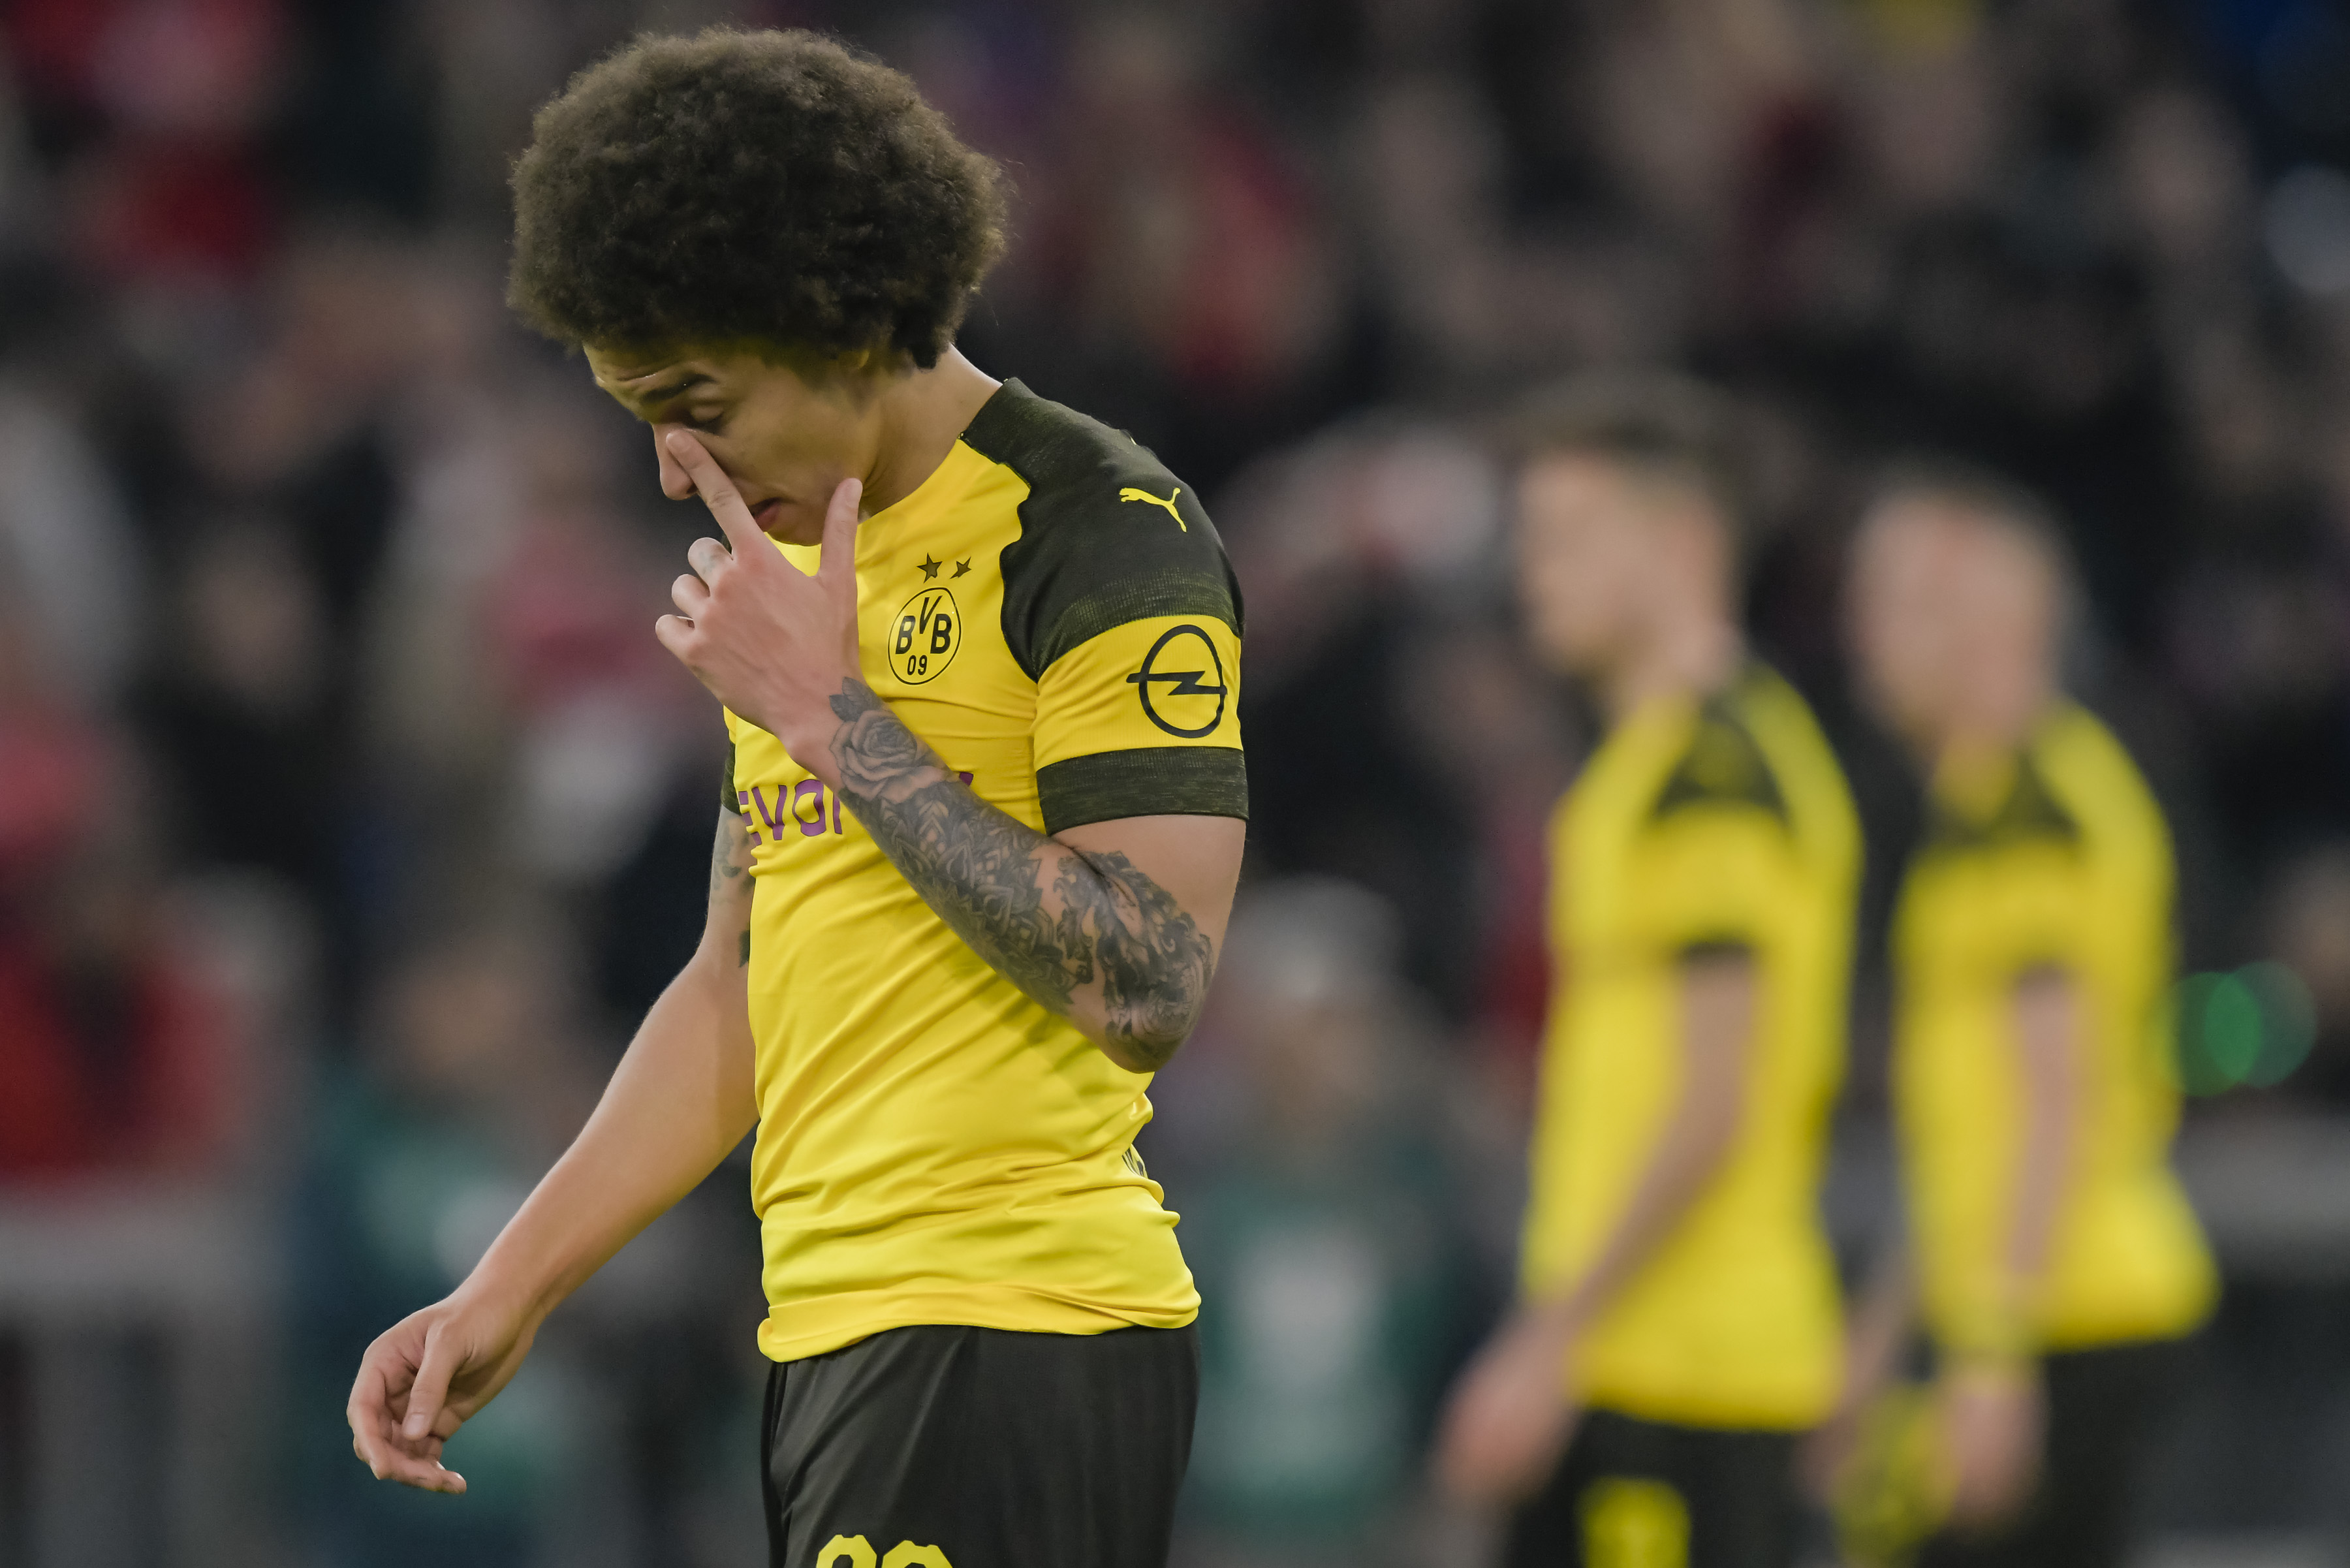 Axel Witsel misses out with an injury (Photo by Guenter SCHIFFMANN / AFP) / RESTRICTIONS: DFL REGULATIONS PROHIBIT ANY USE OF PHOTOGRAPHS AS IMAGE SEQUENCES AND/OR QUASI-VIDEO (Photo credit should read GUENTER SCHIFFMANN/AFP via Getty Images)